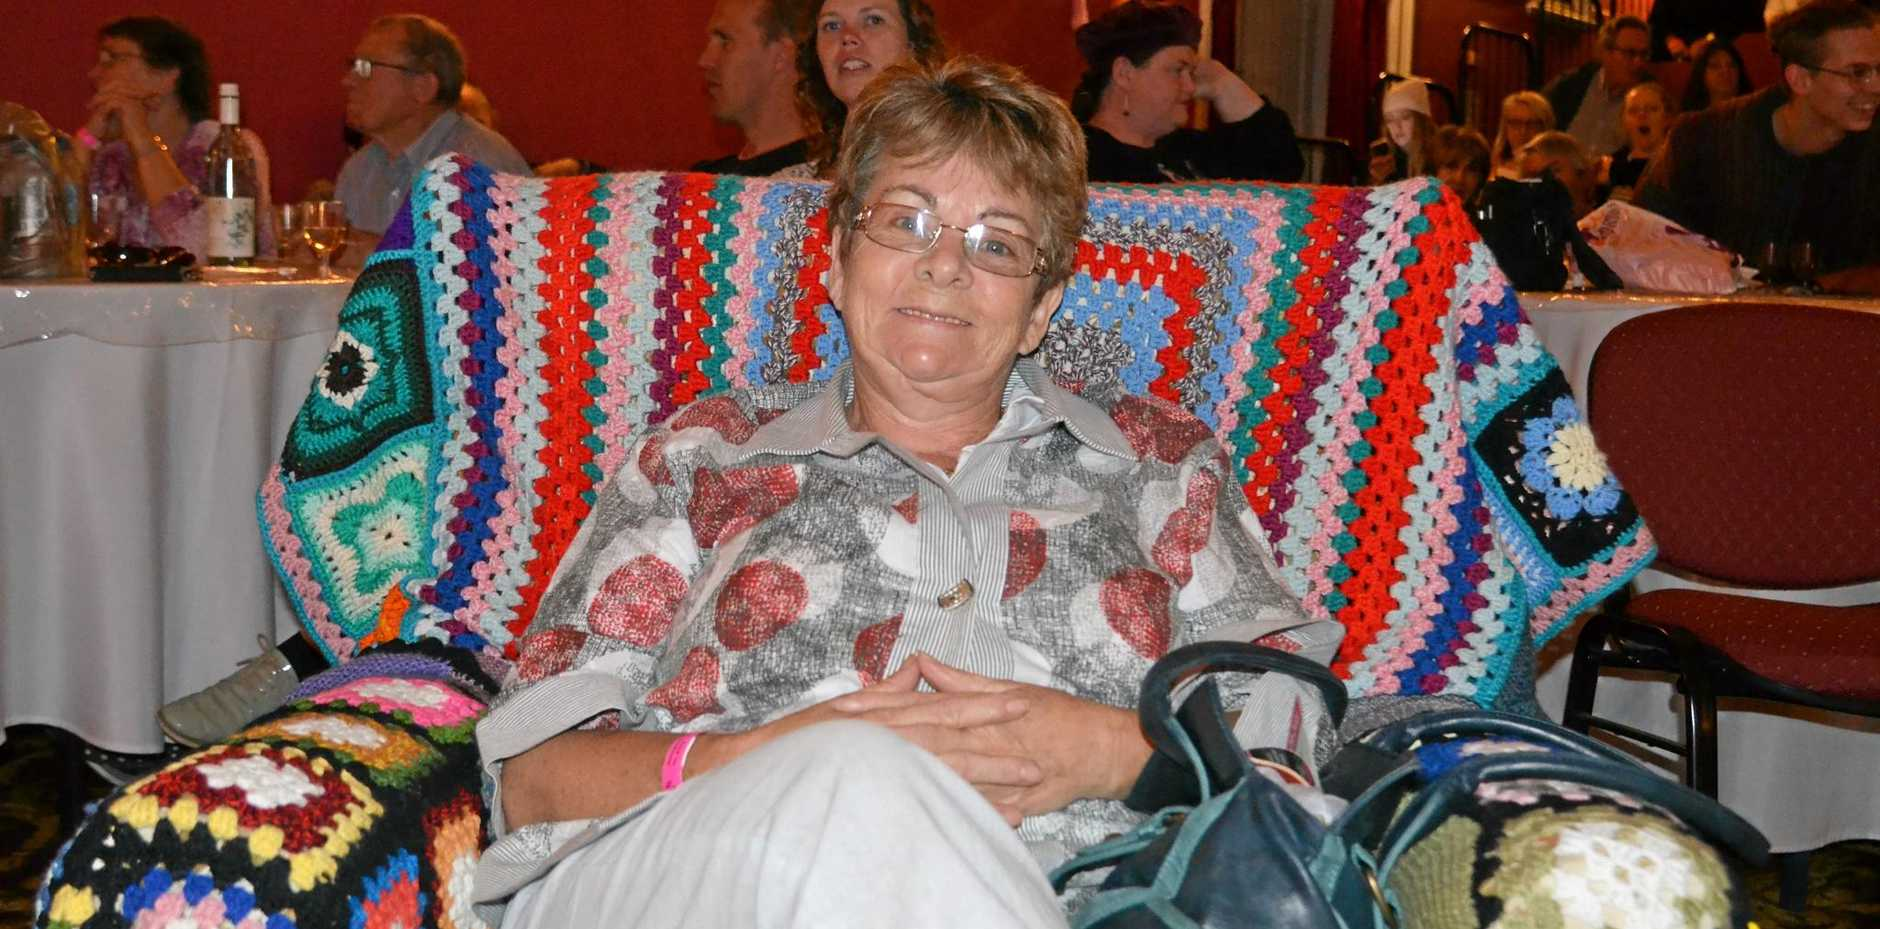 TRAVELLER: Karen Walsh made the trip from Darwin to join the fun of Jumpers and Jazz in July.